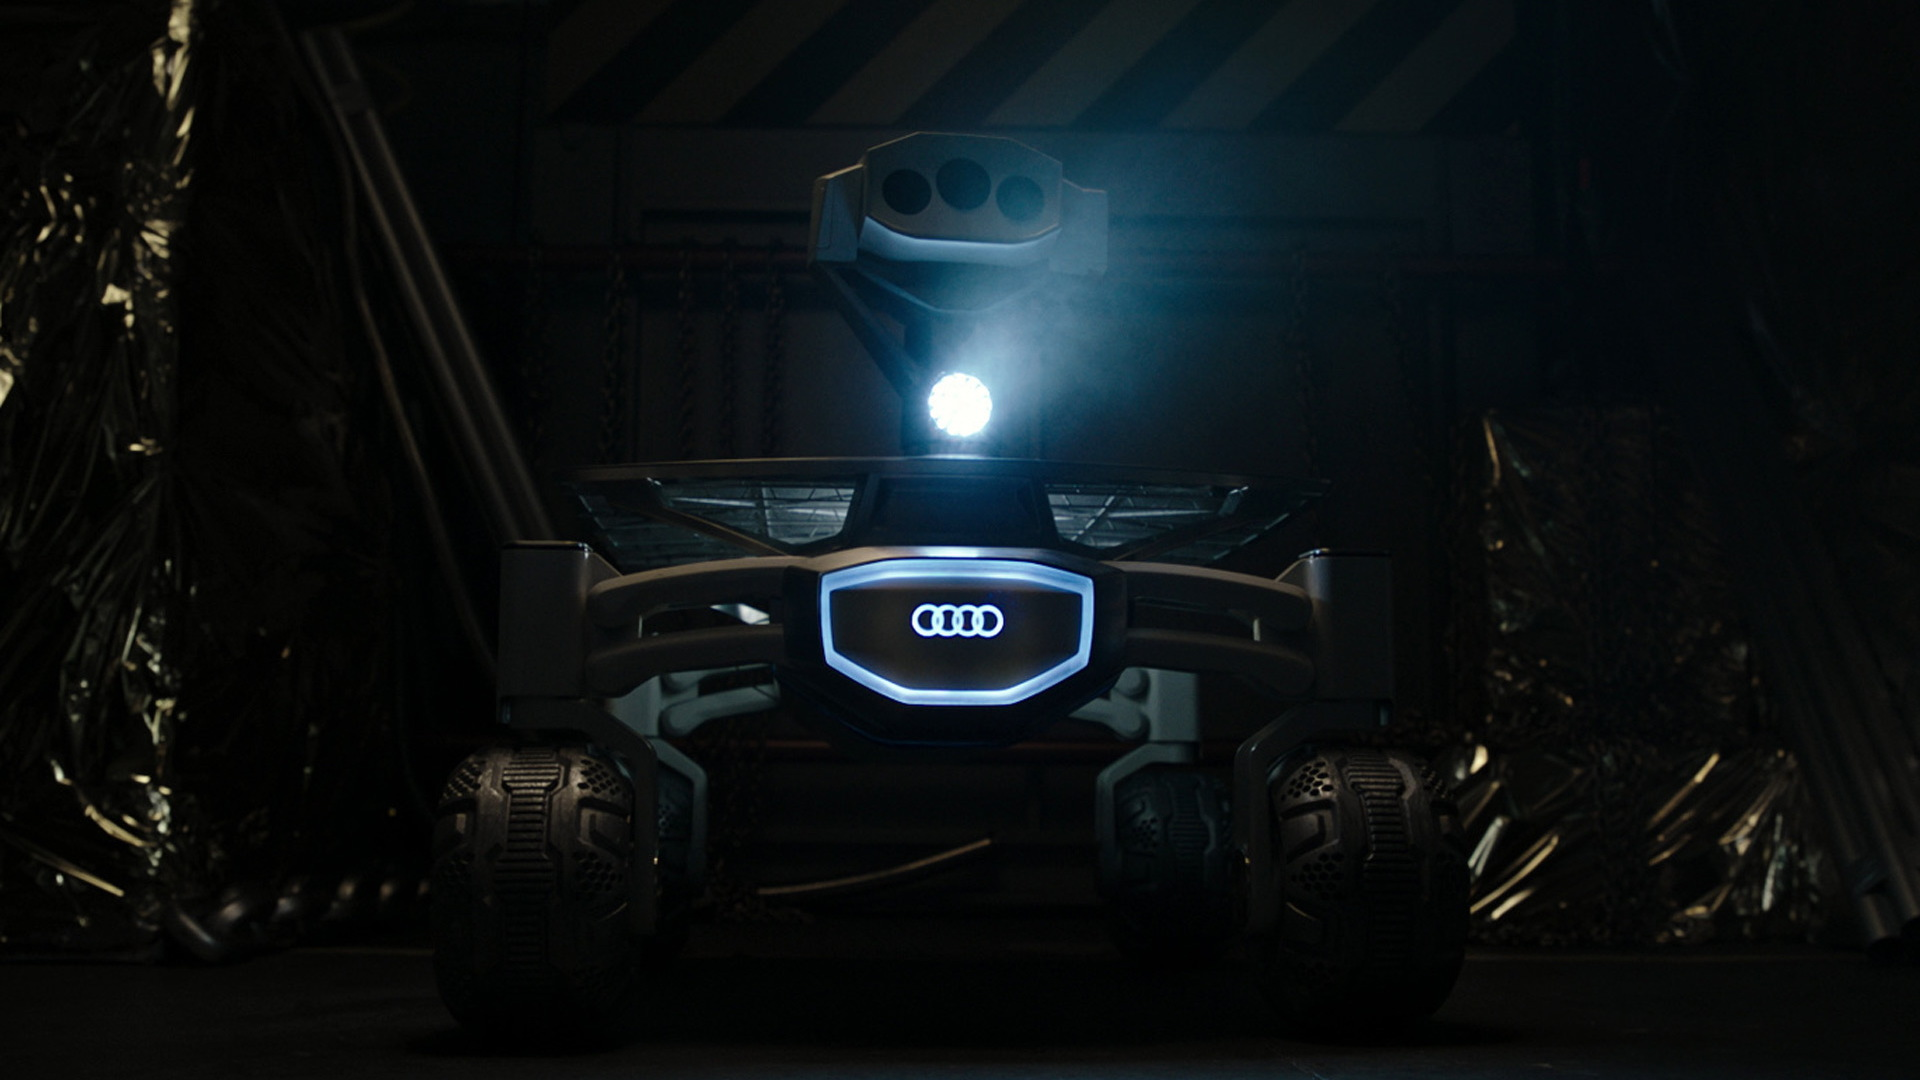 Audi Lunar Quattro featured in 'Alien: Covenant'